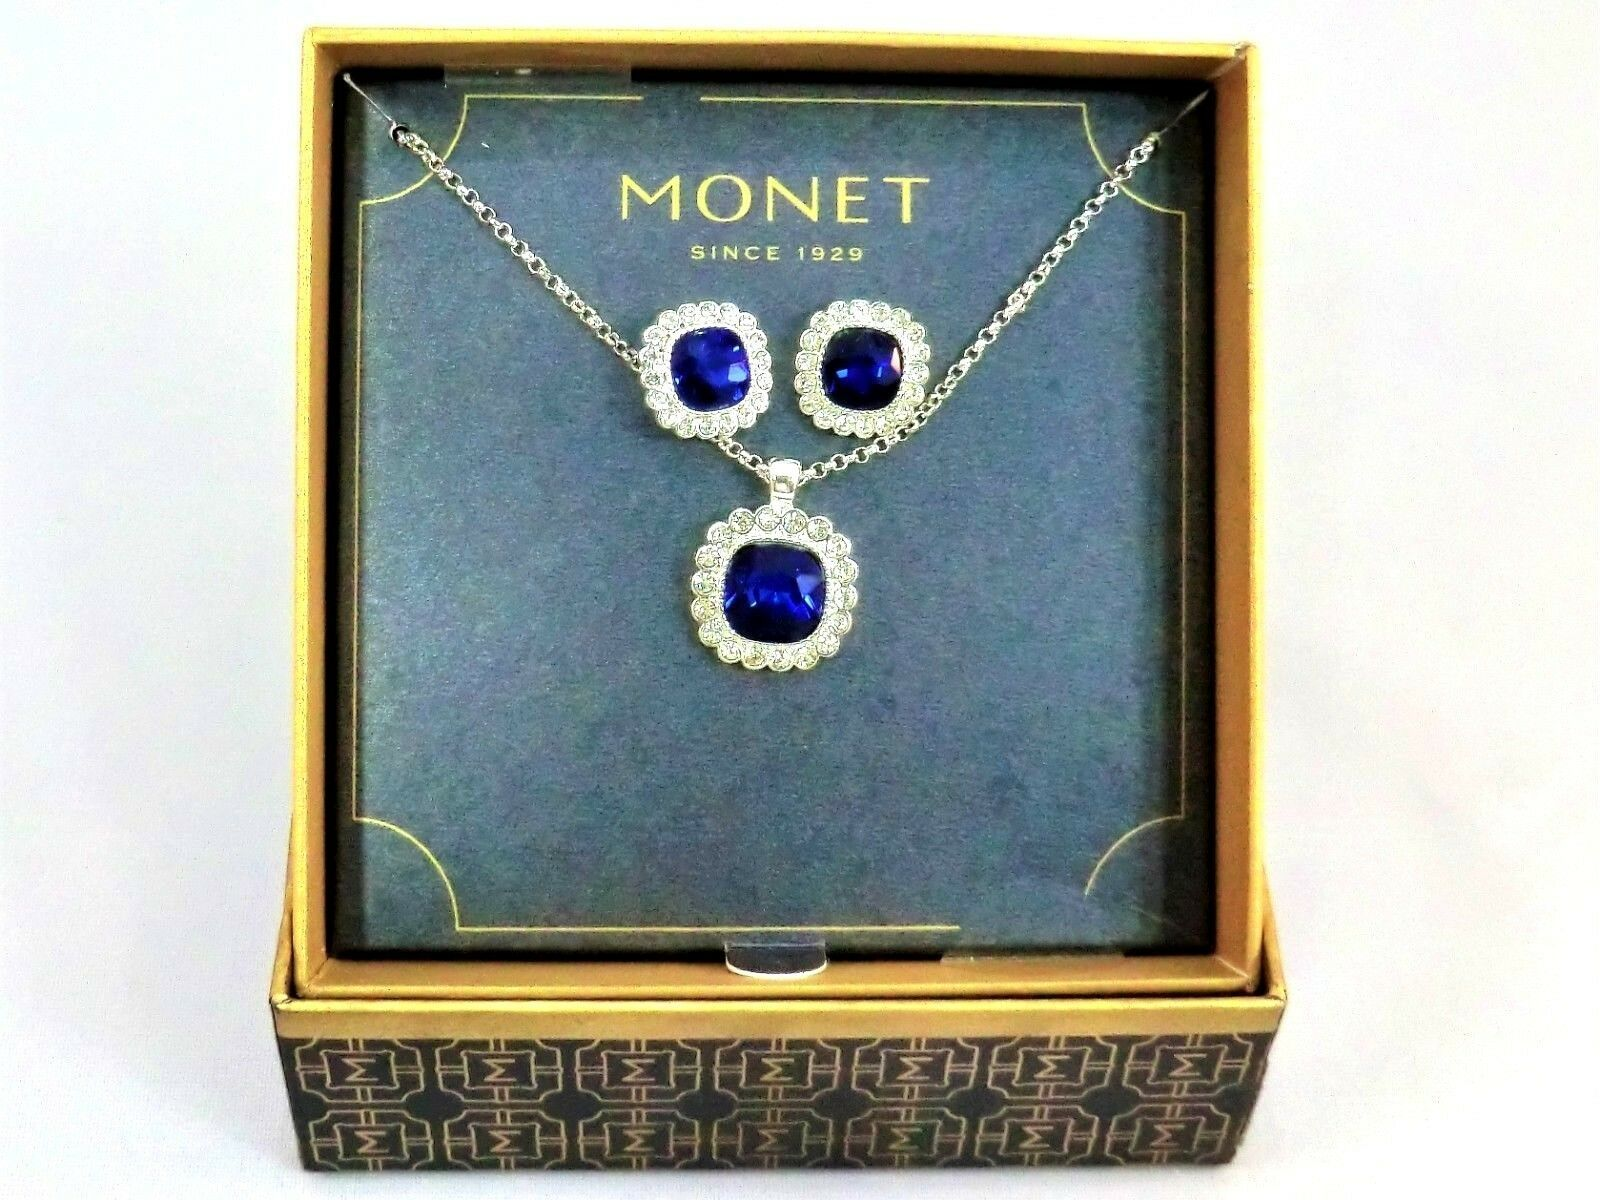 Vintage Monet earrings & necklace costume jewelry box set new & unused